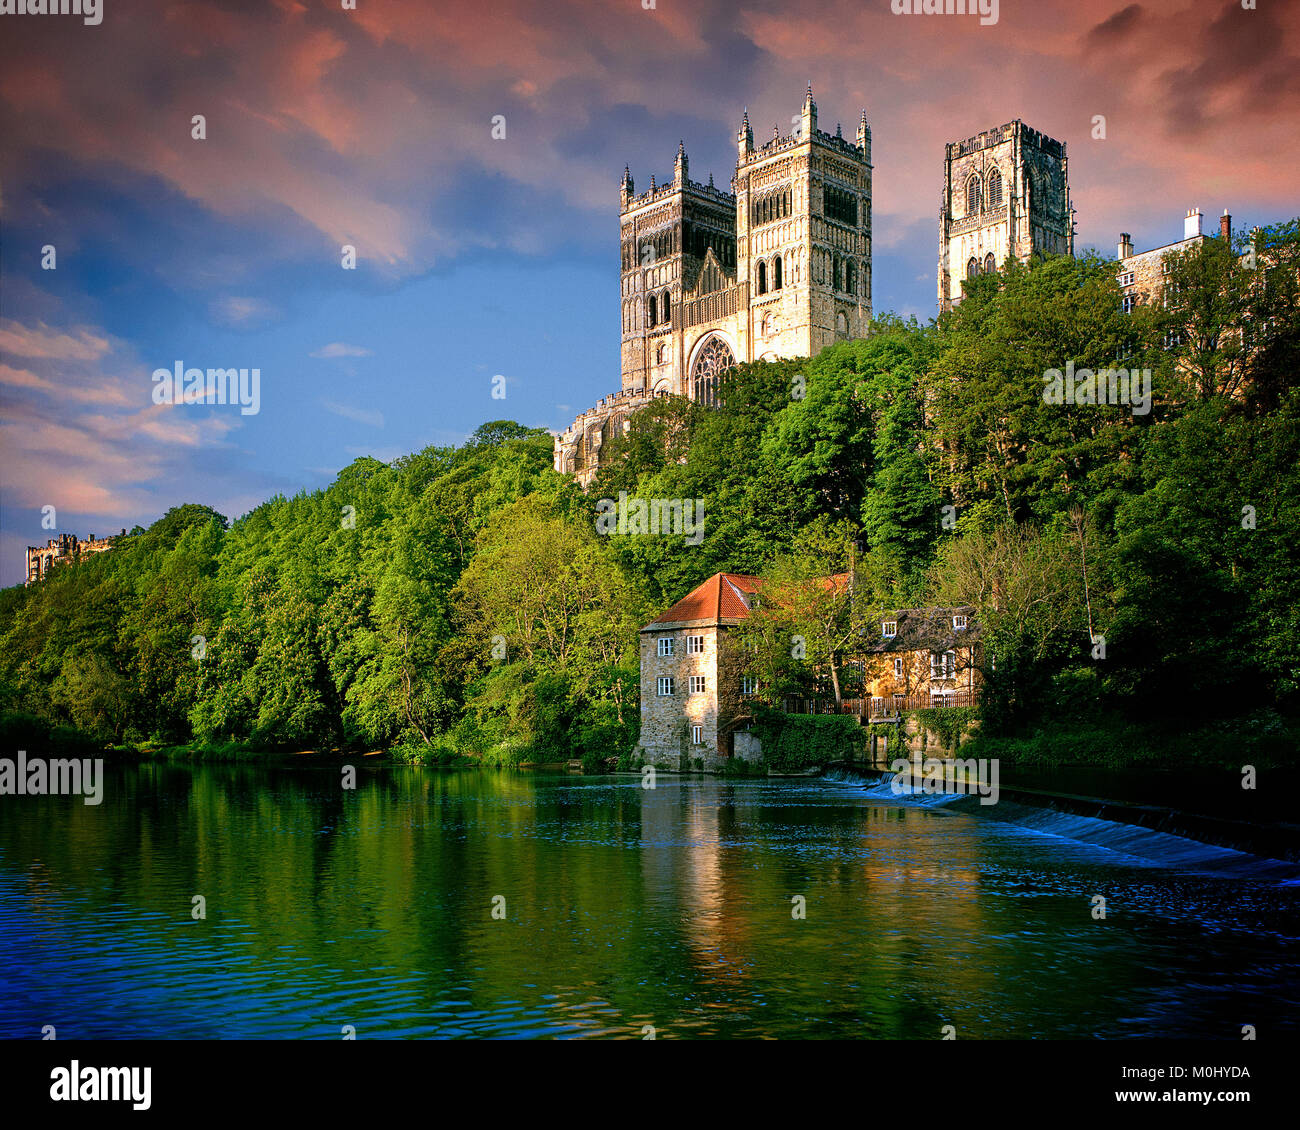 GB - DURHAM: The Cathedral above River Wear - Stock Image